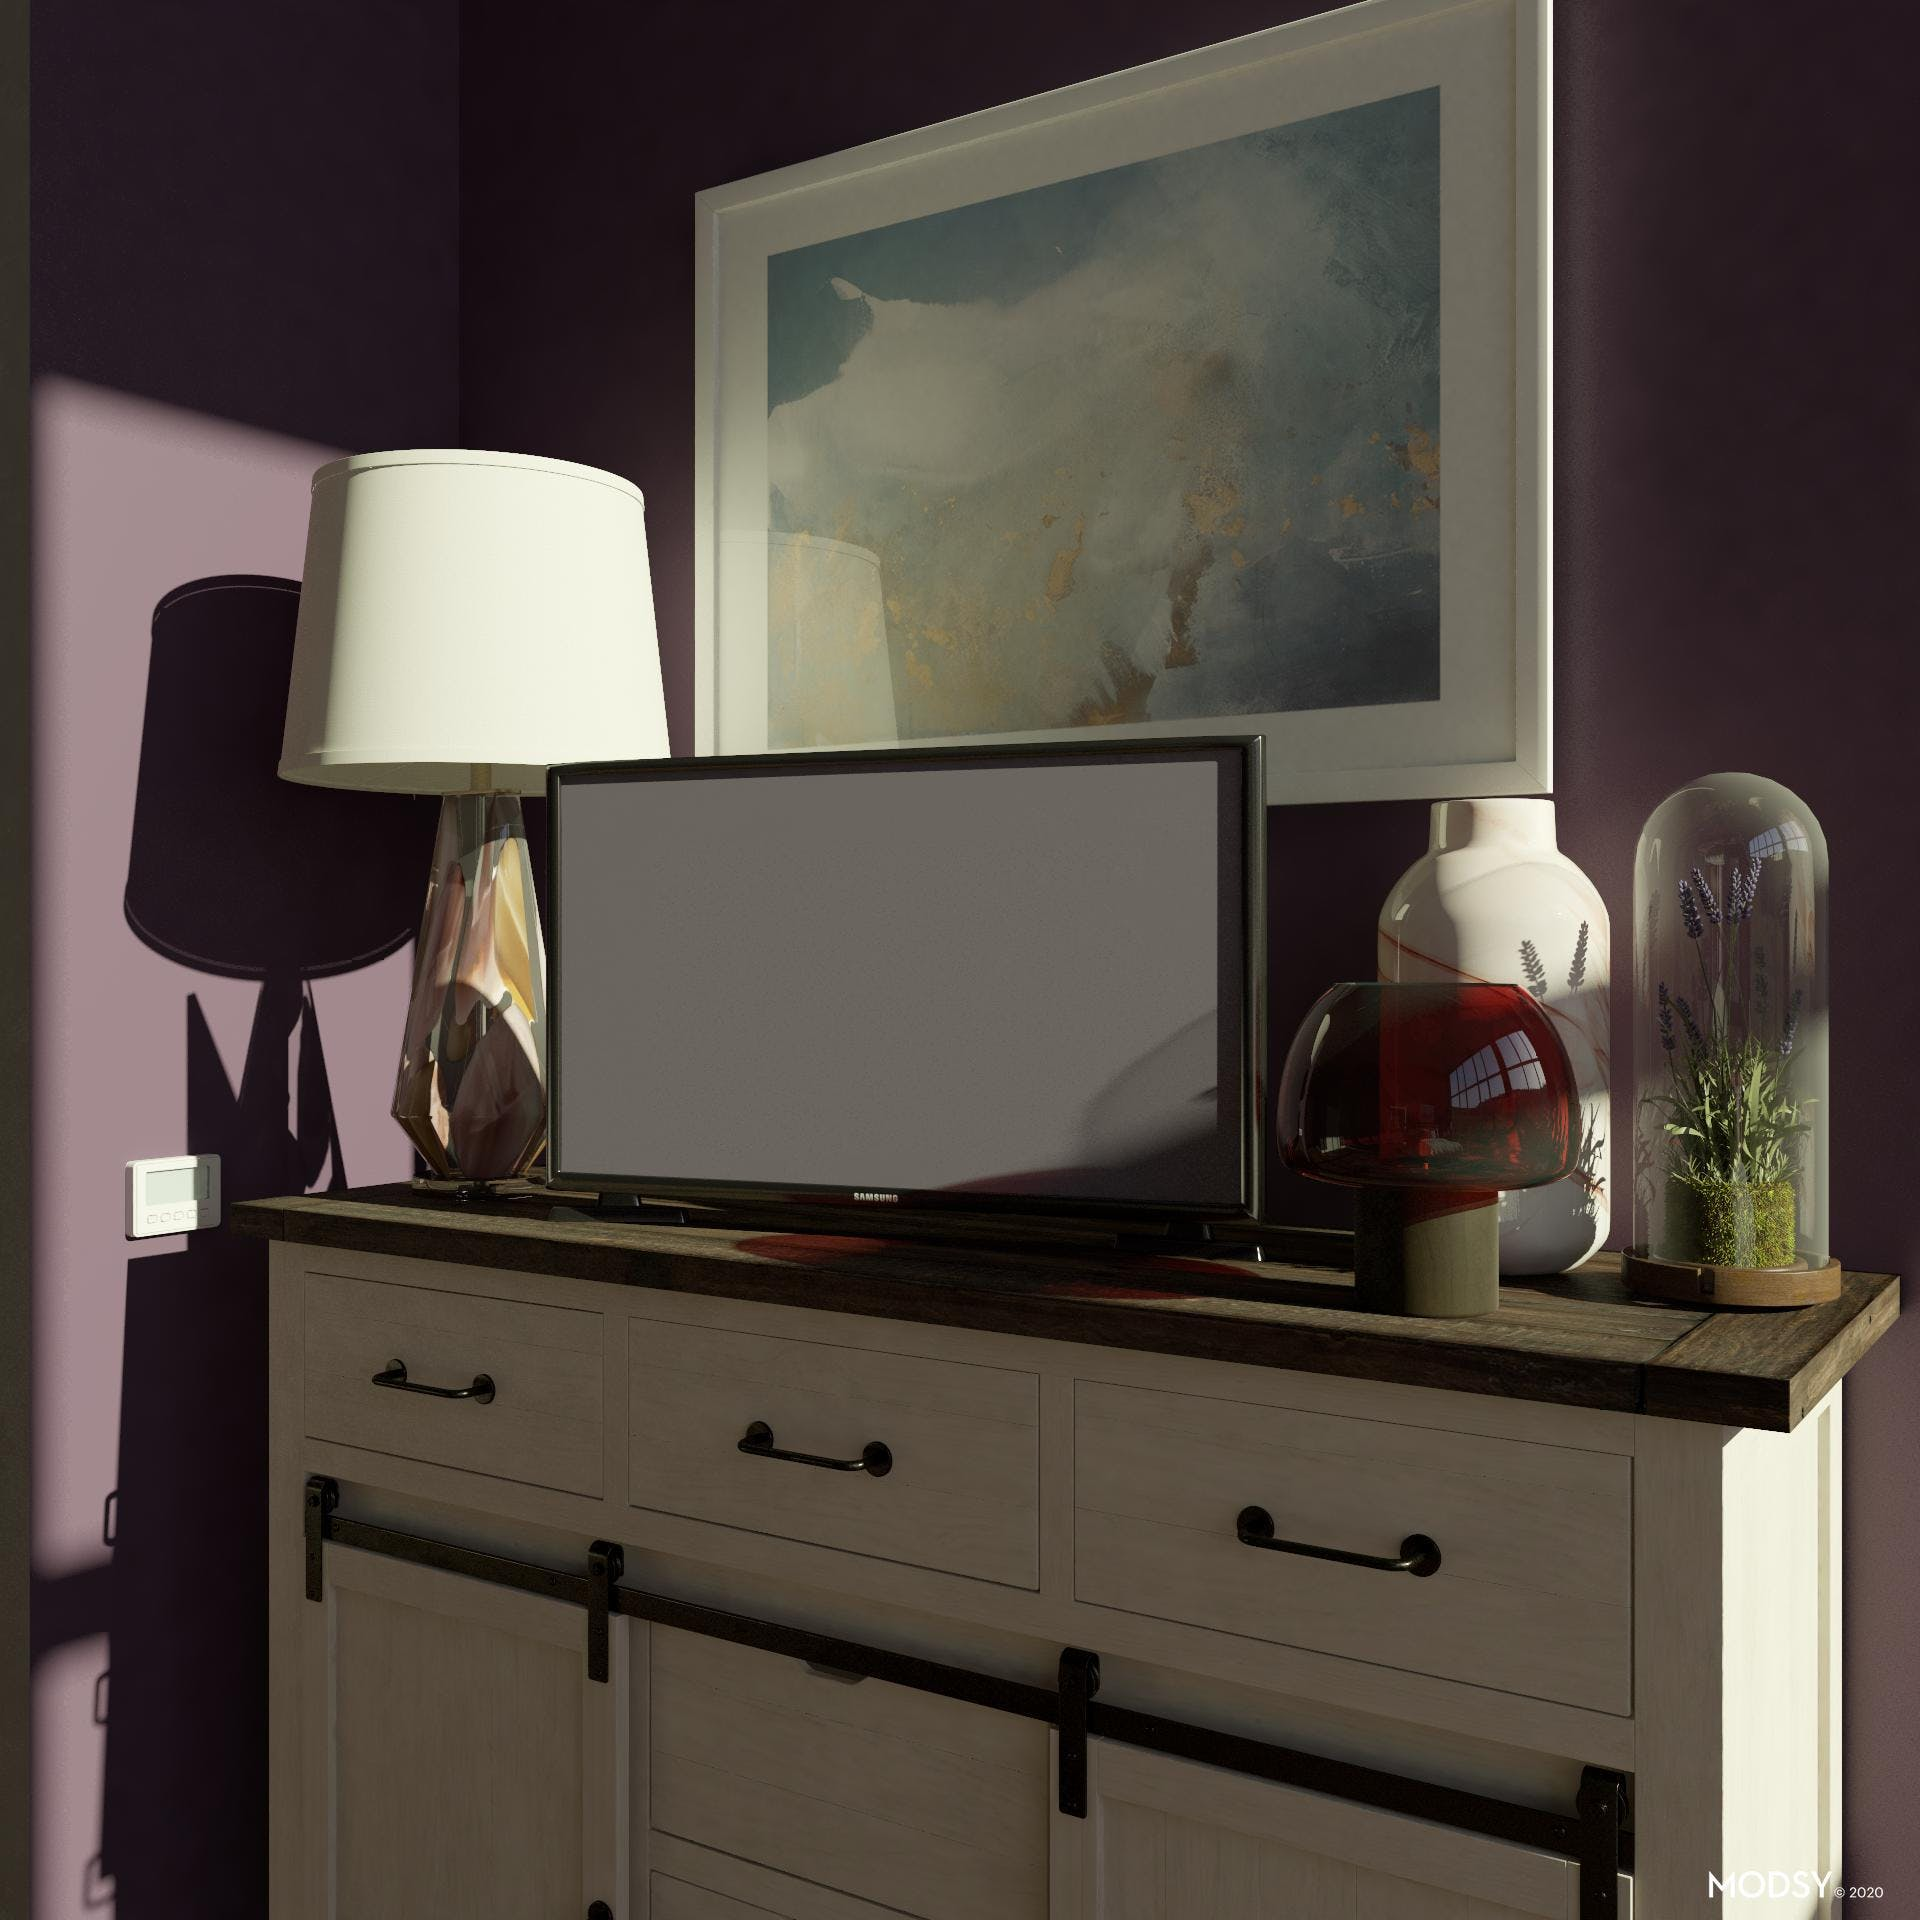 Charming Sideboard For Storage